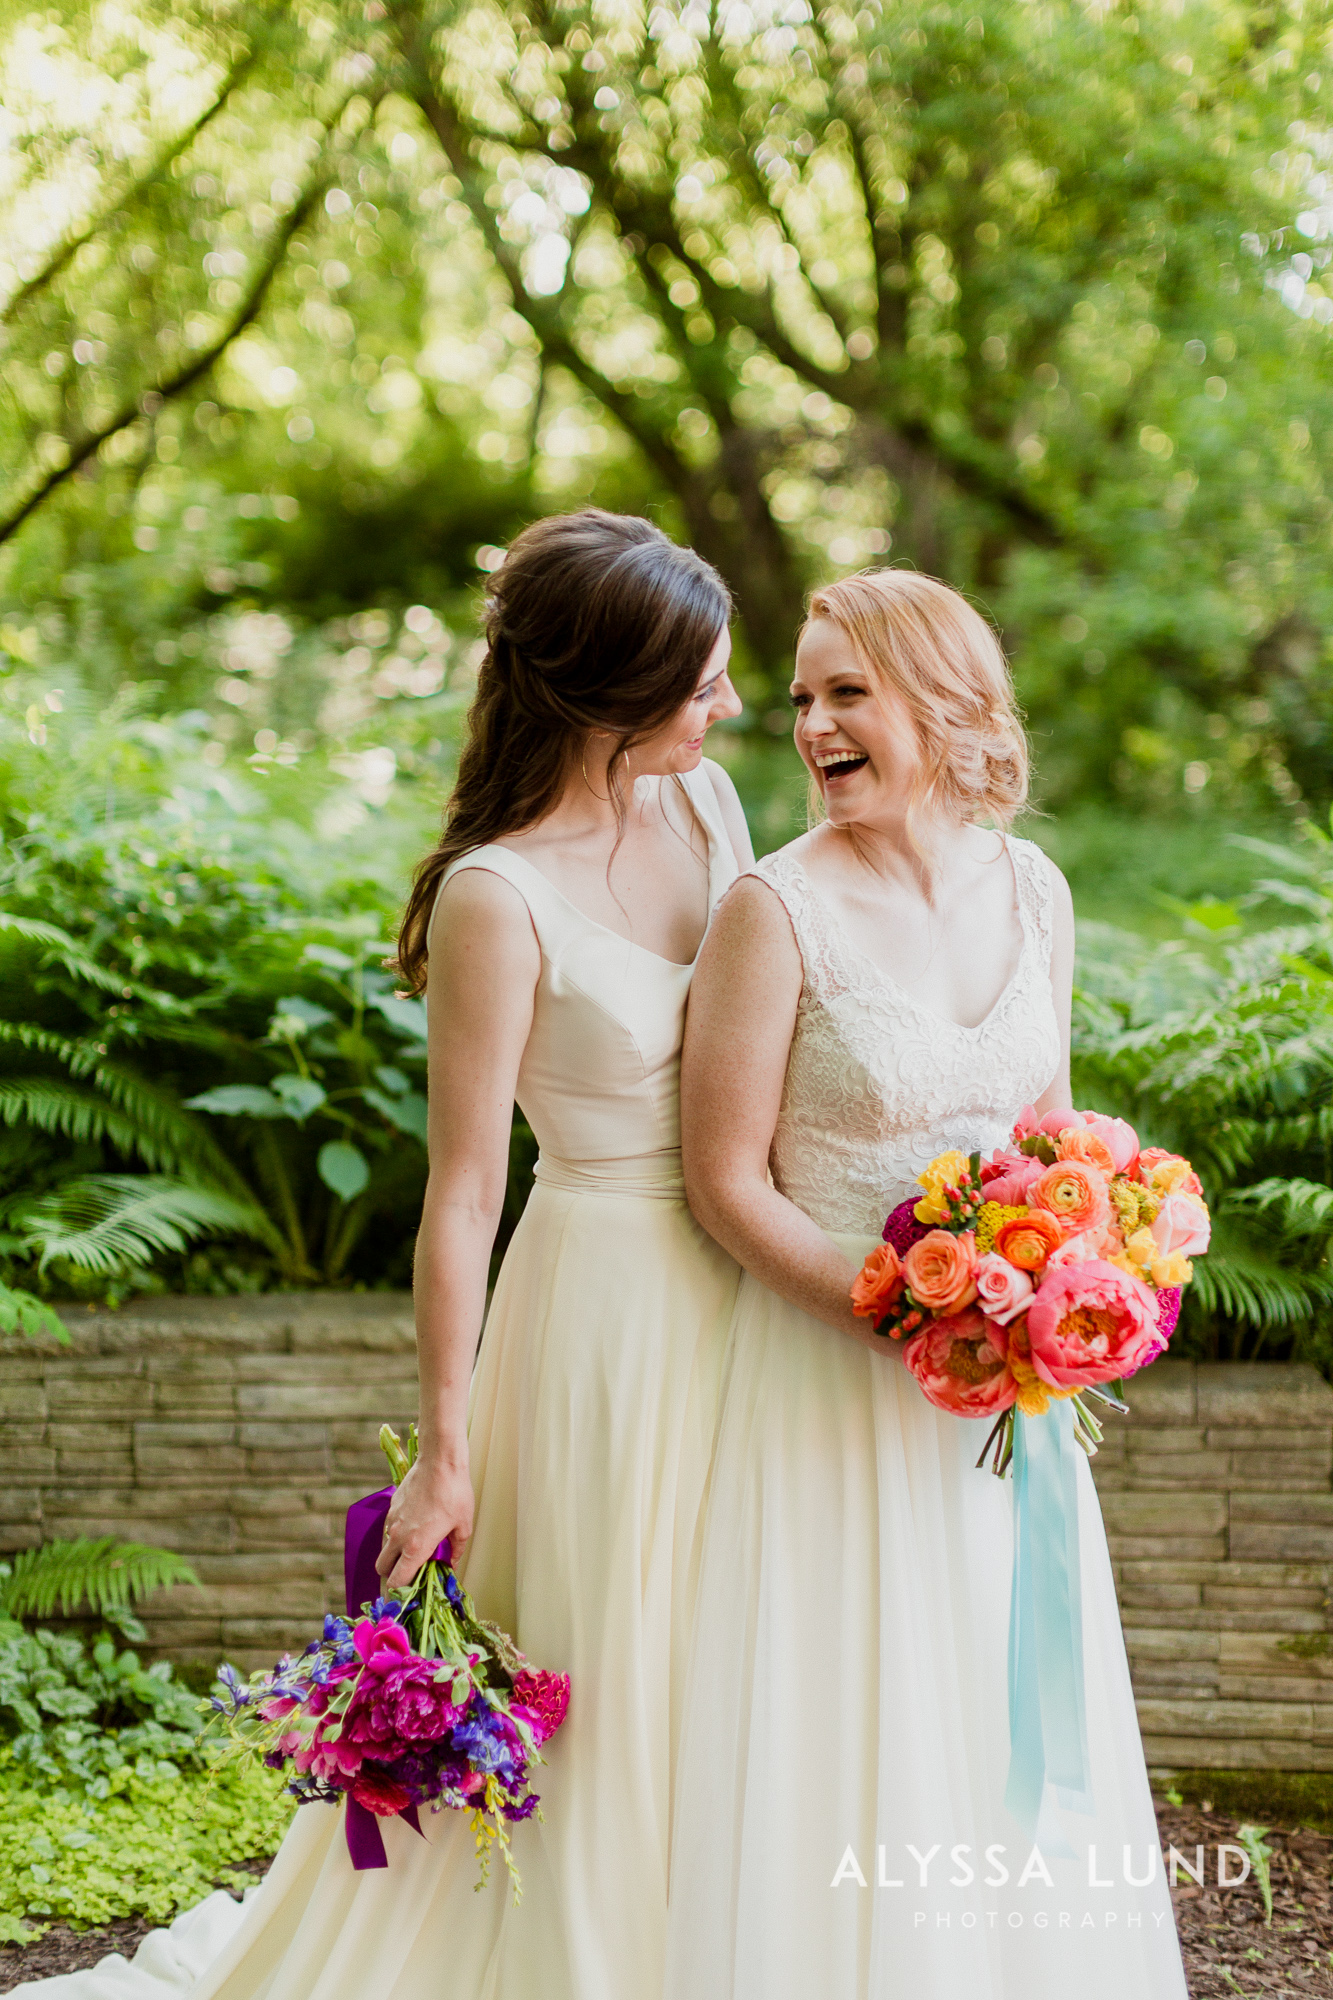 Queer wedding photography inspiration by Alyssa Lund Photography-28.jpg